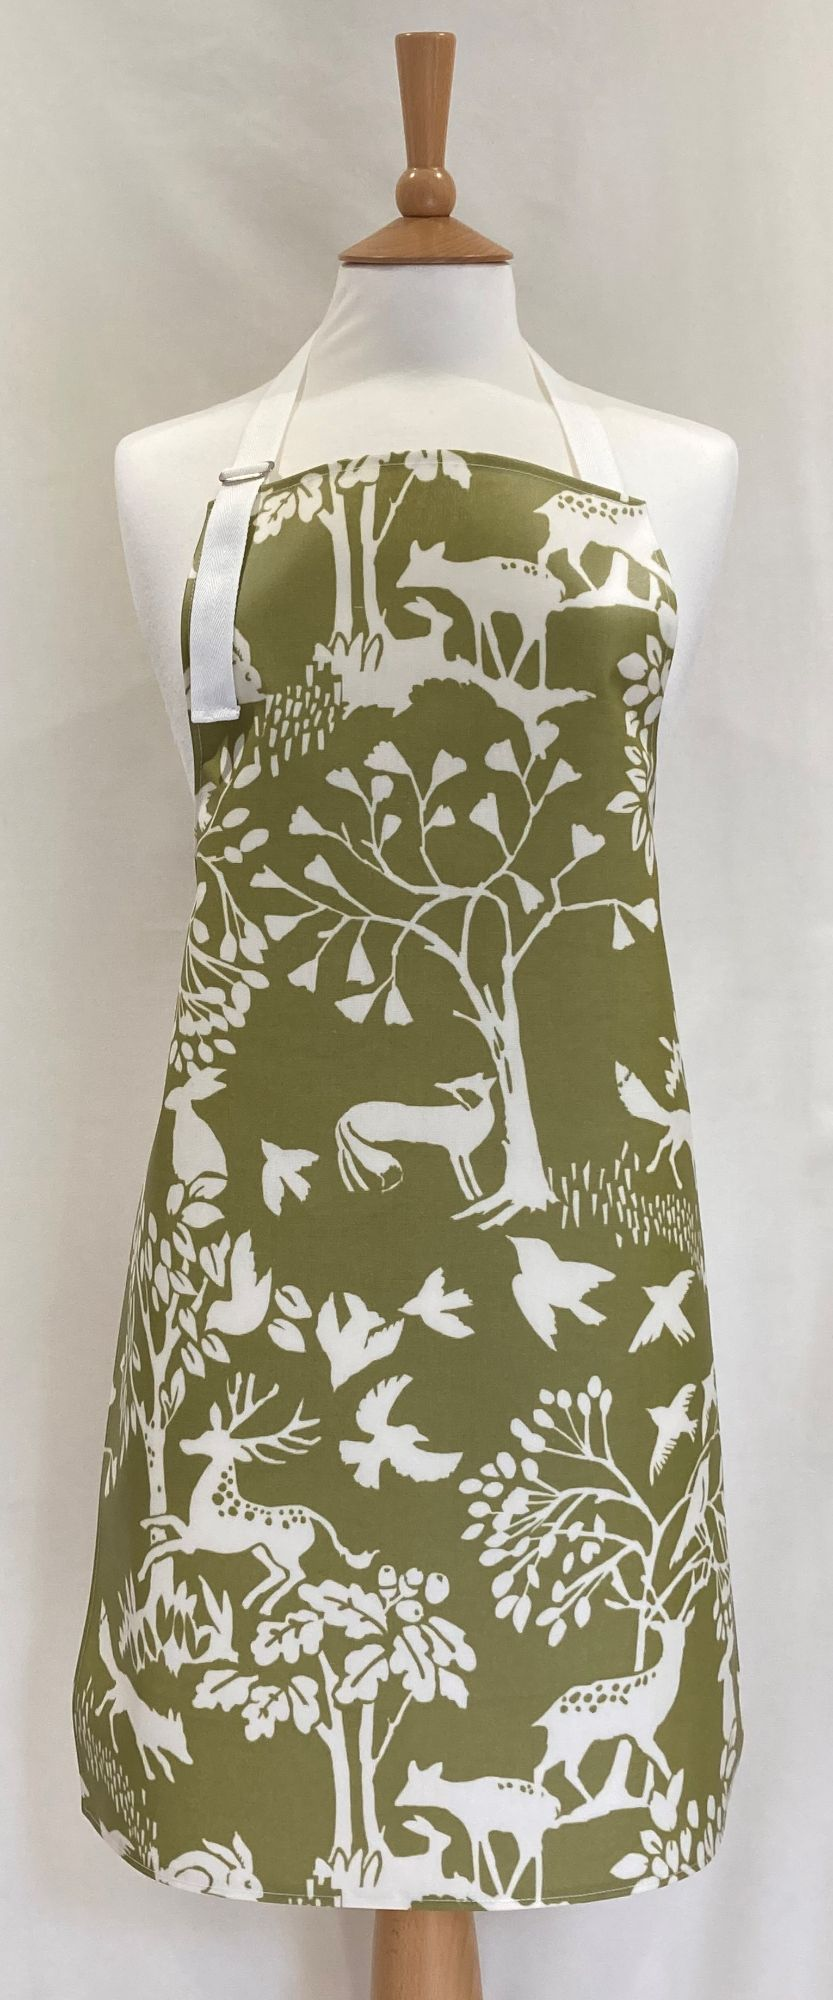 Country Wildlife Adult Oilcloth Apron